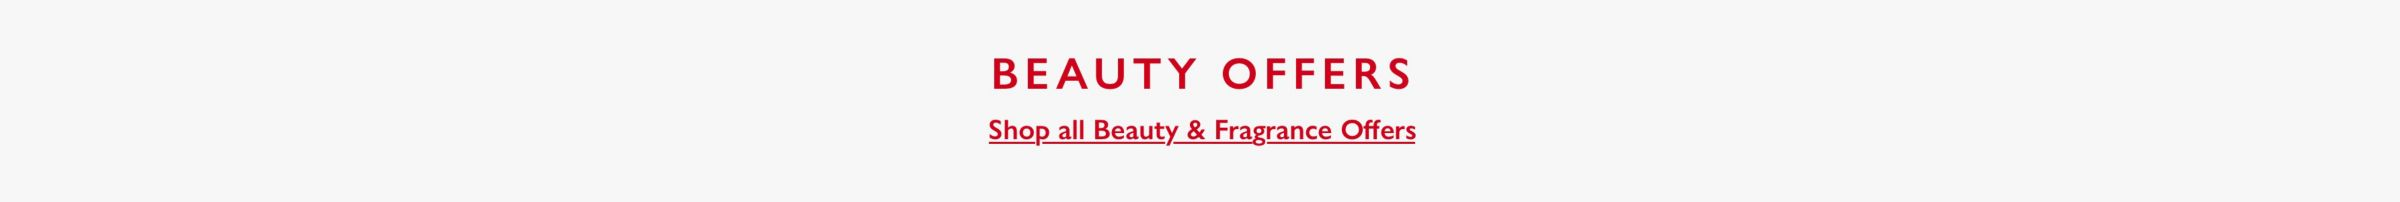 15 percent off beauty and fragrance banner